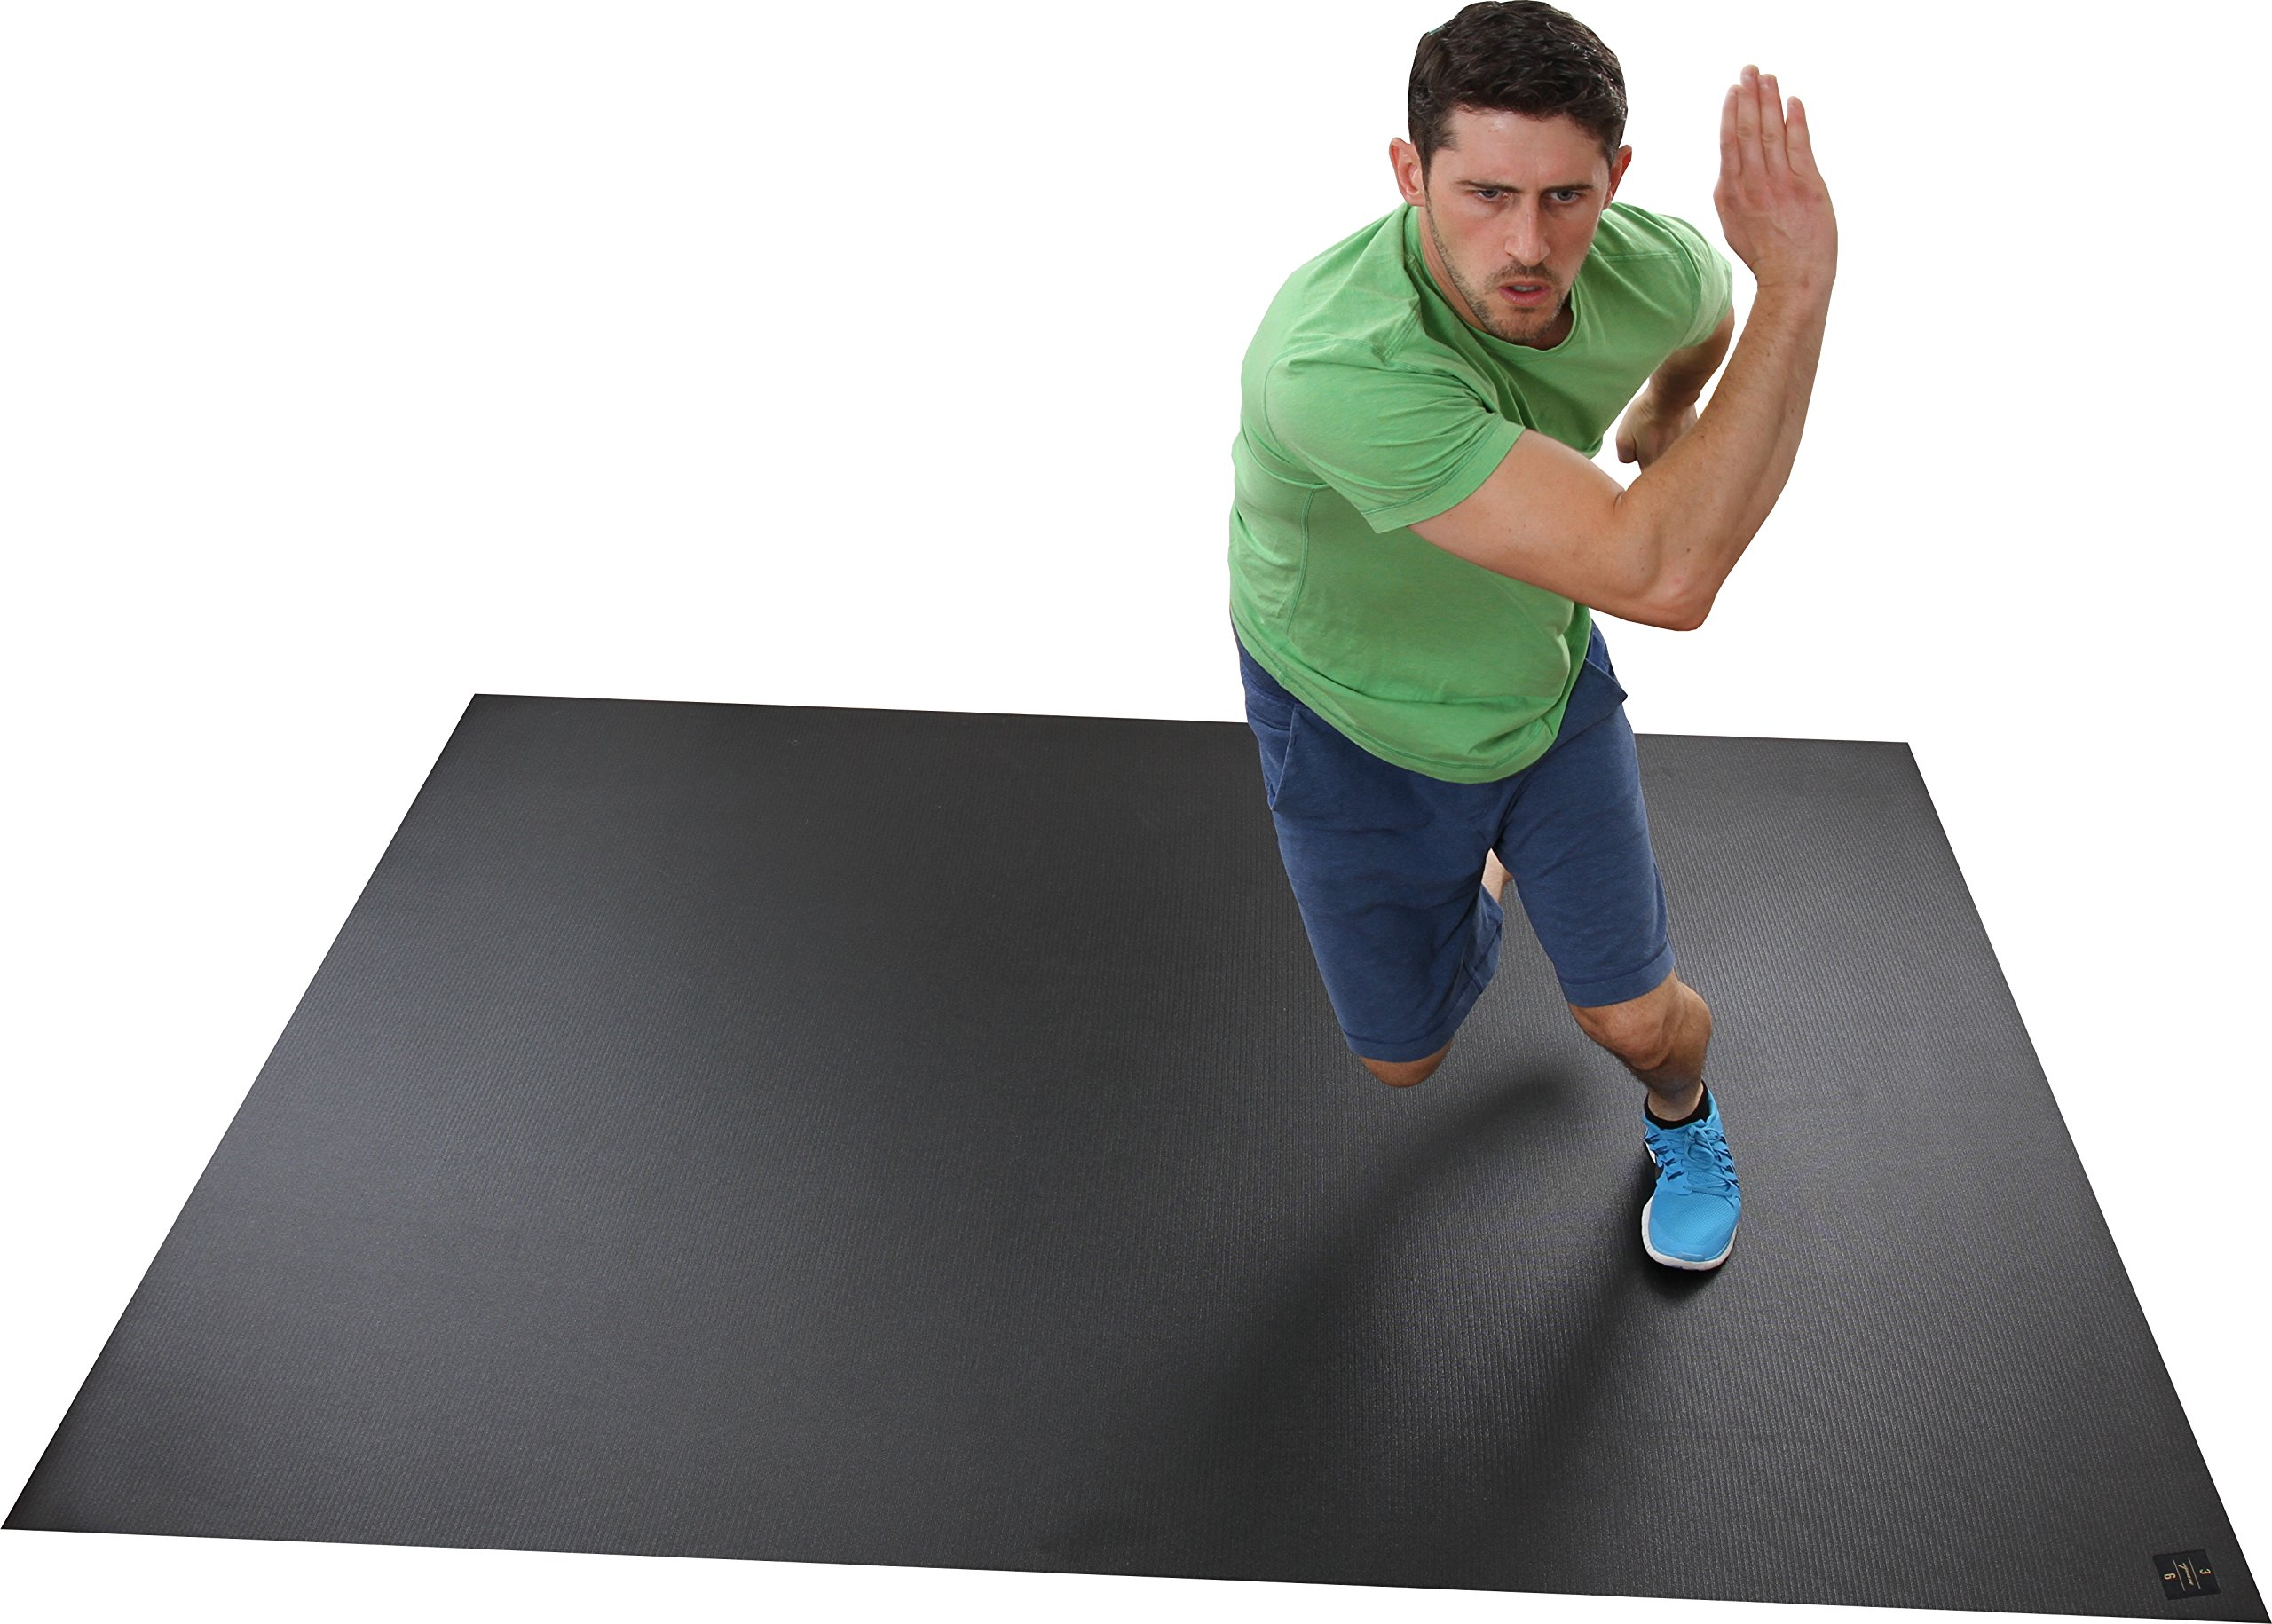 Square36 Extra Large Exercise Mat, 8 x 6-Feet